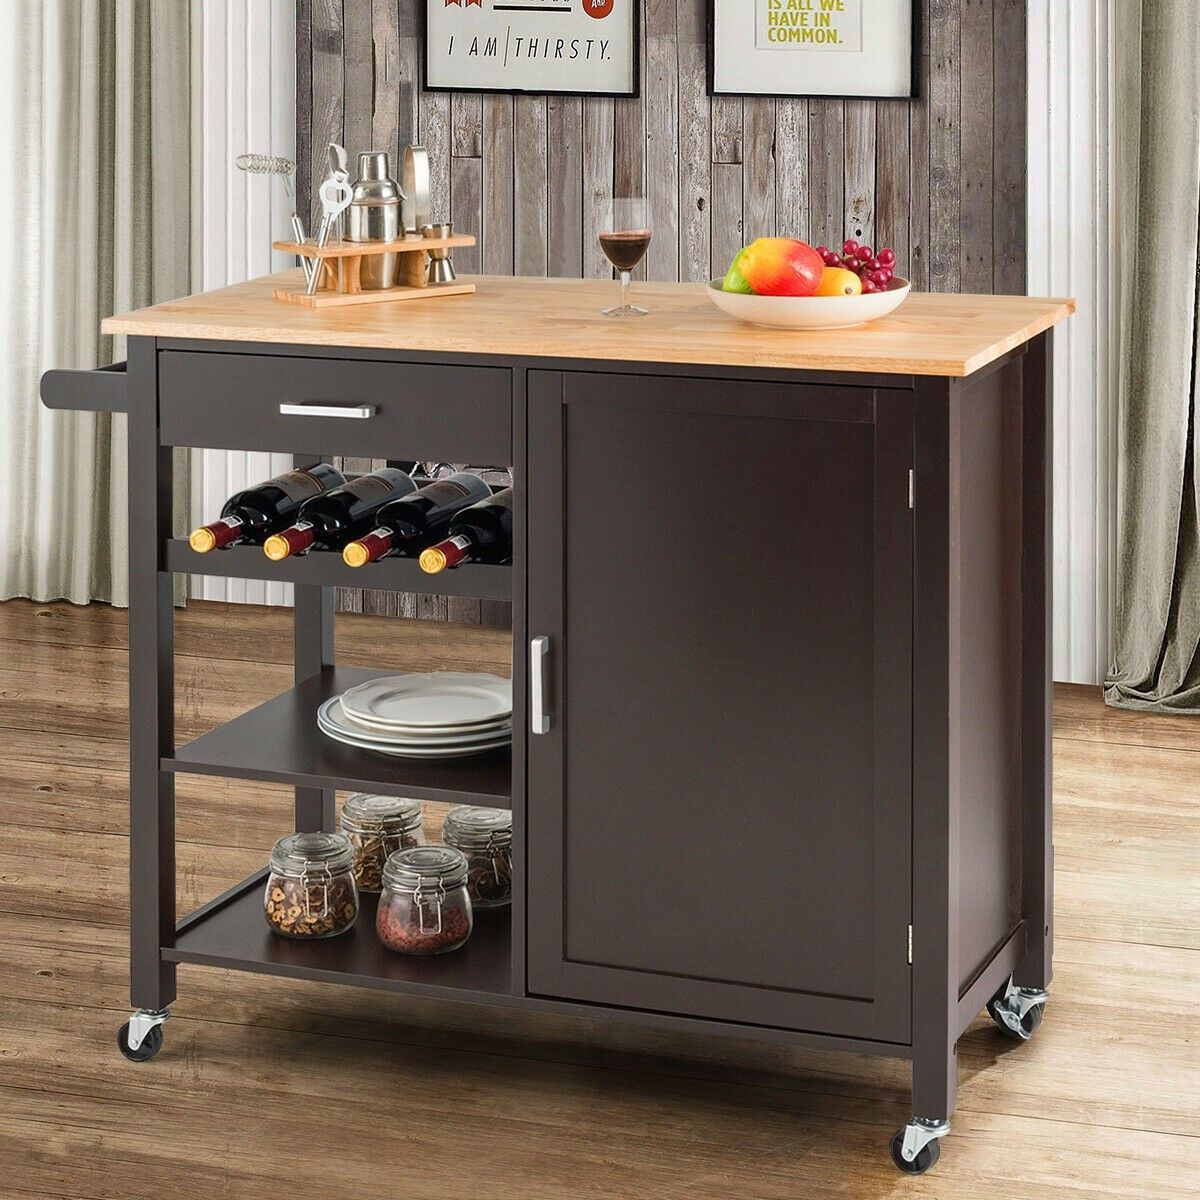 Kitchen Island Cart Rolling Serving Cart Wood Trolley Wood Kitchen Island Wooden Kitchen Kitchen Island Cart